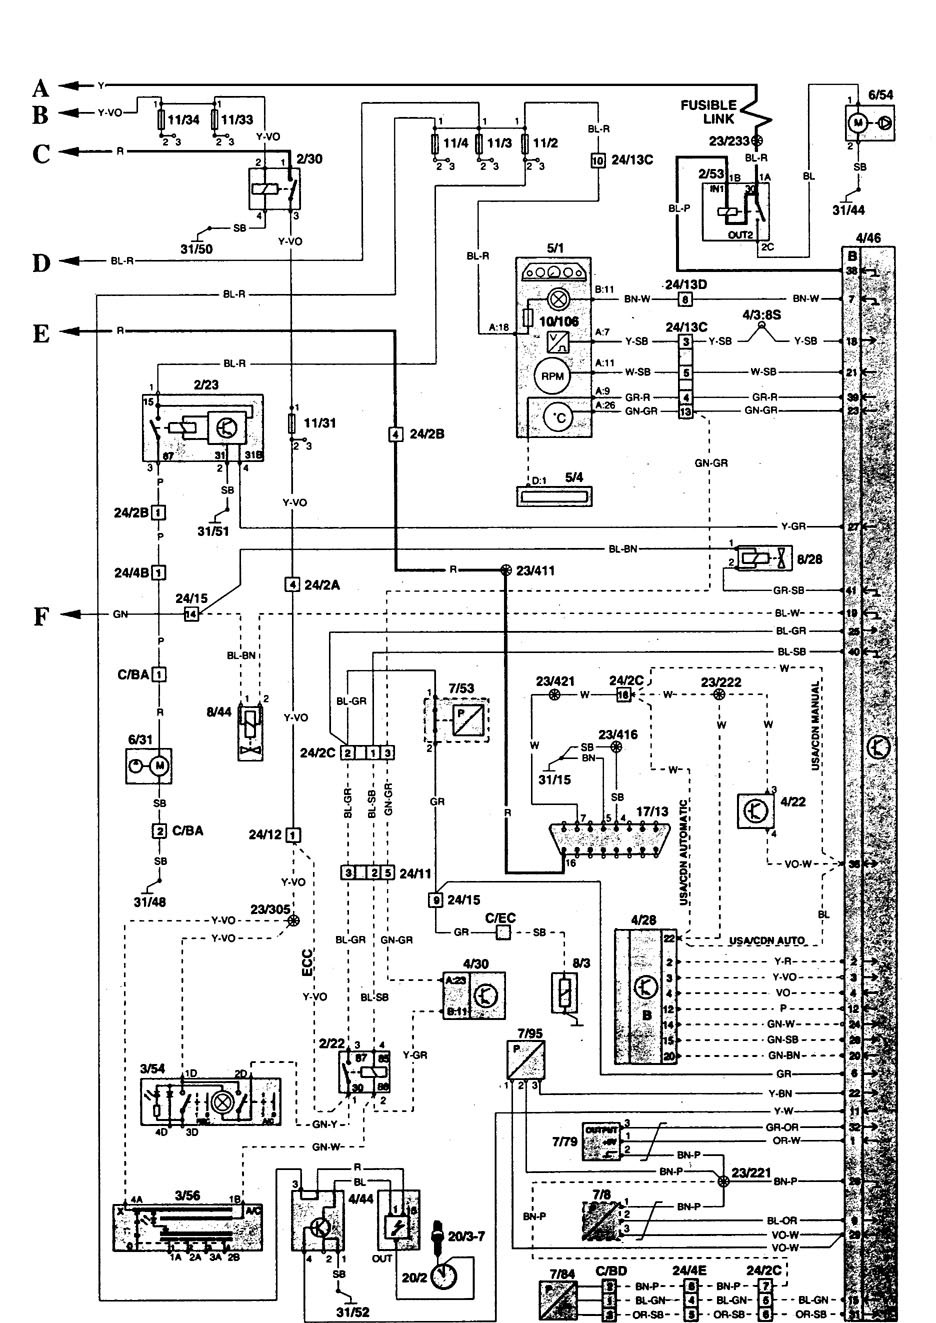 Volvo 850 Abs Wiring Diagram Opinions About 1985 Turbo Fuse Box Image Collections Writing Sample Ideas And Guide 1995 Speed Sensor Location